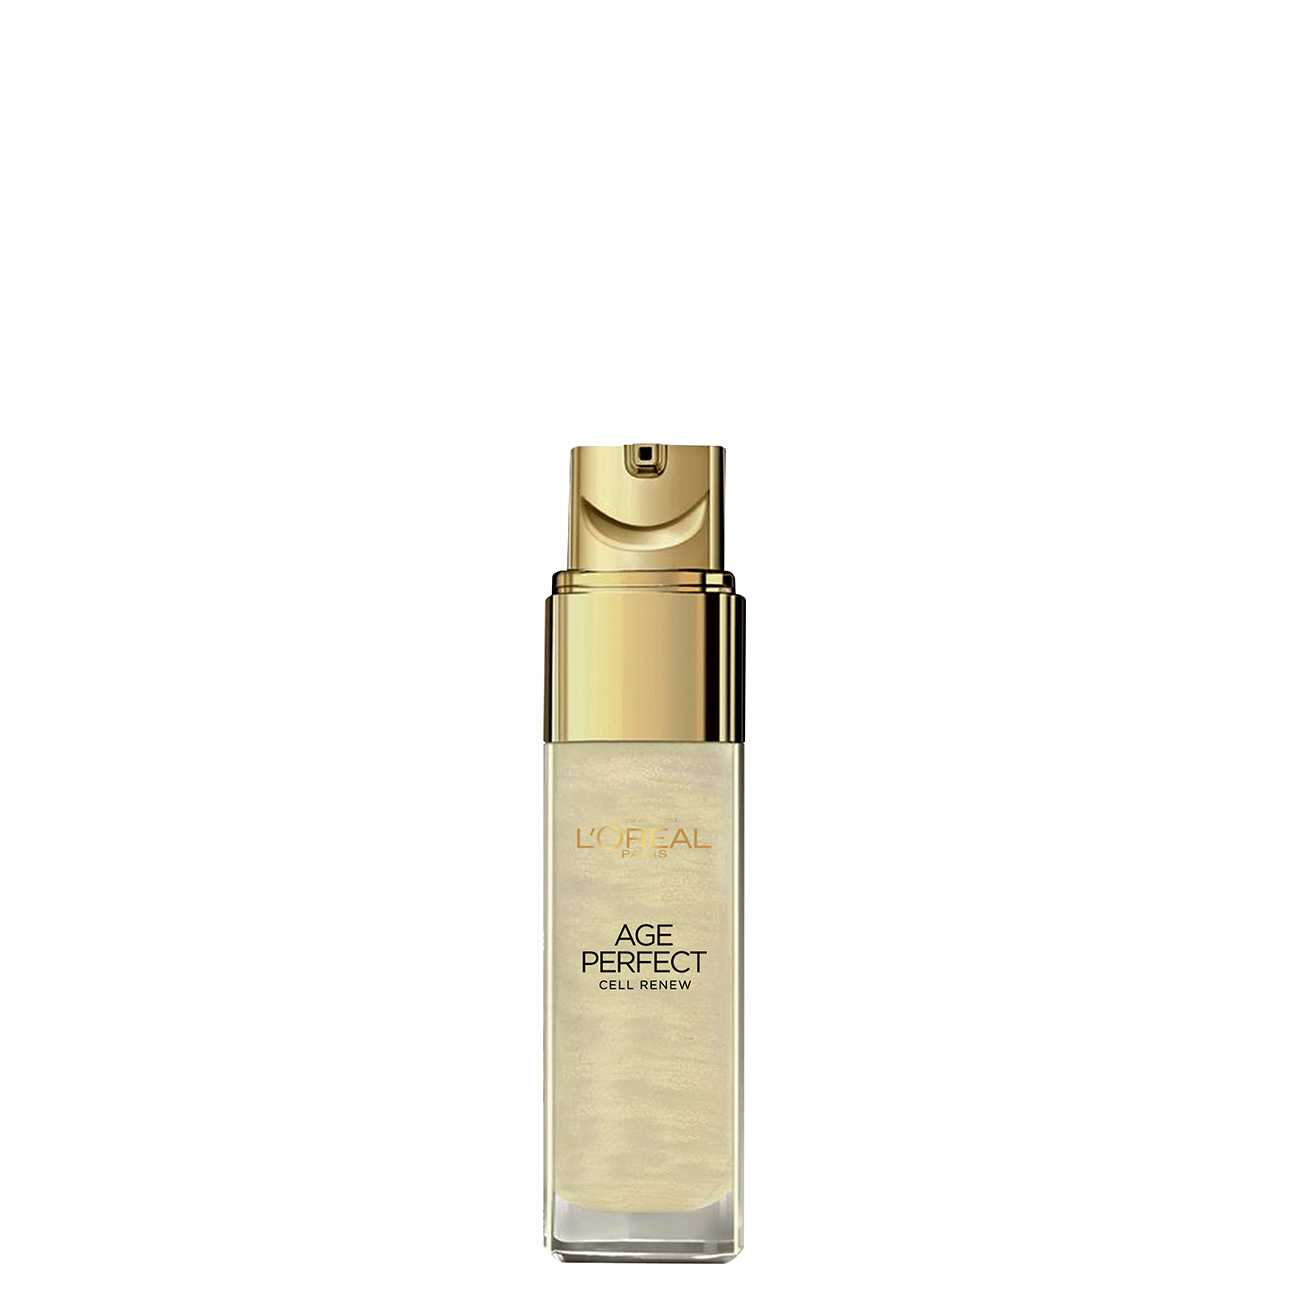 Age Perfect Cell Renew 30 Ml L'Oreal imagine 2021 bestvalue.eu